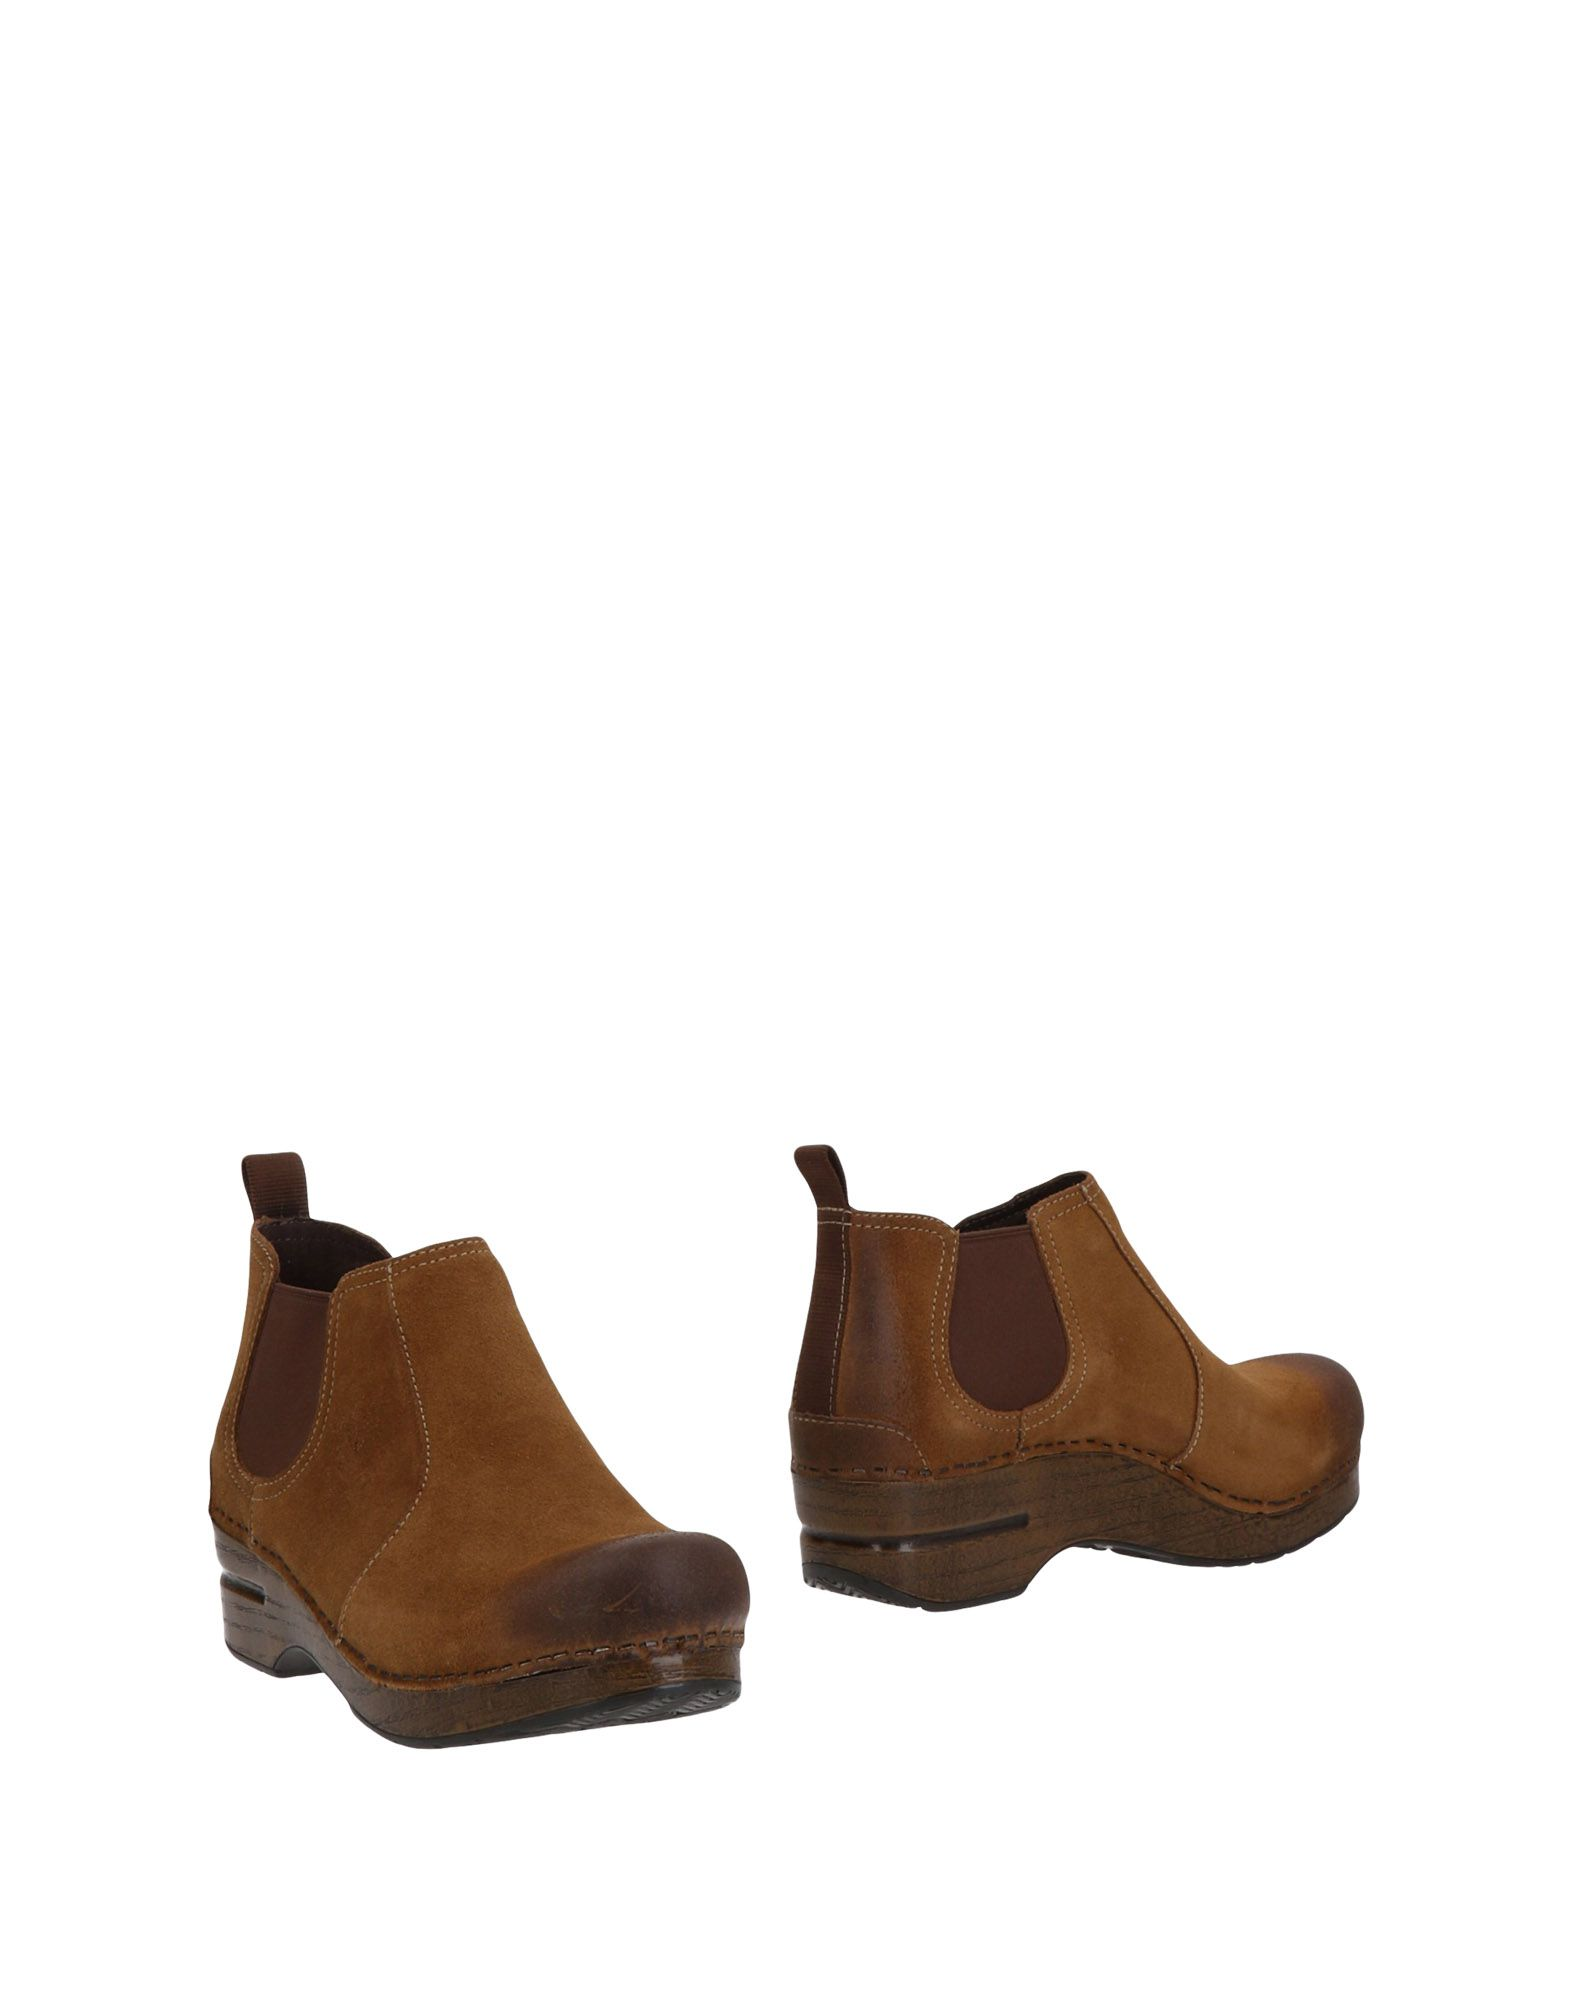 DANSKO Ankle boots. leather, suede effect, no appliqués, solid color, round toeline, square heel, leather lining, rubber cleated sole, contains non-textile parts of animal origin, chelsea boots. Soft Leather